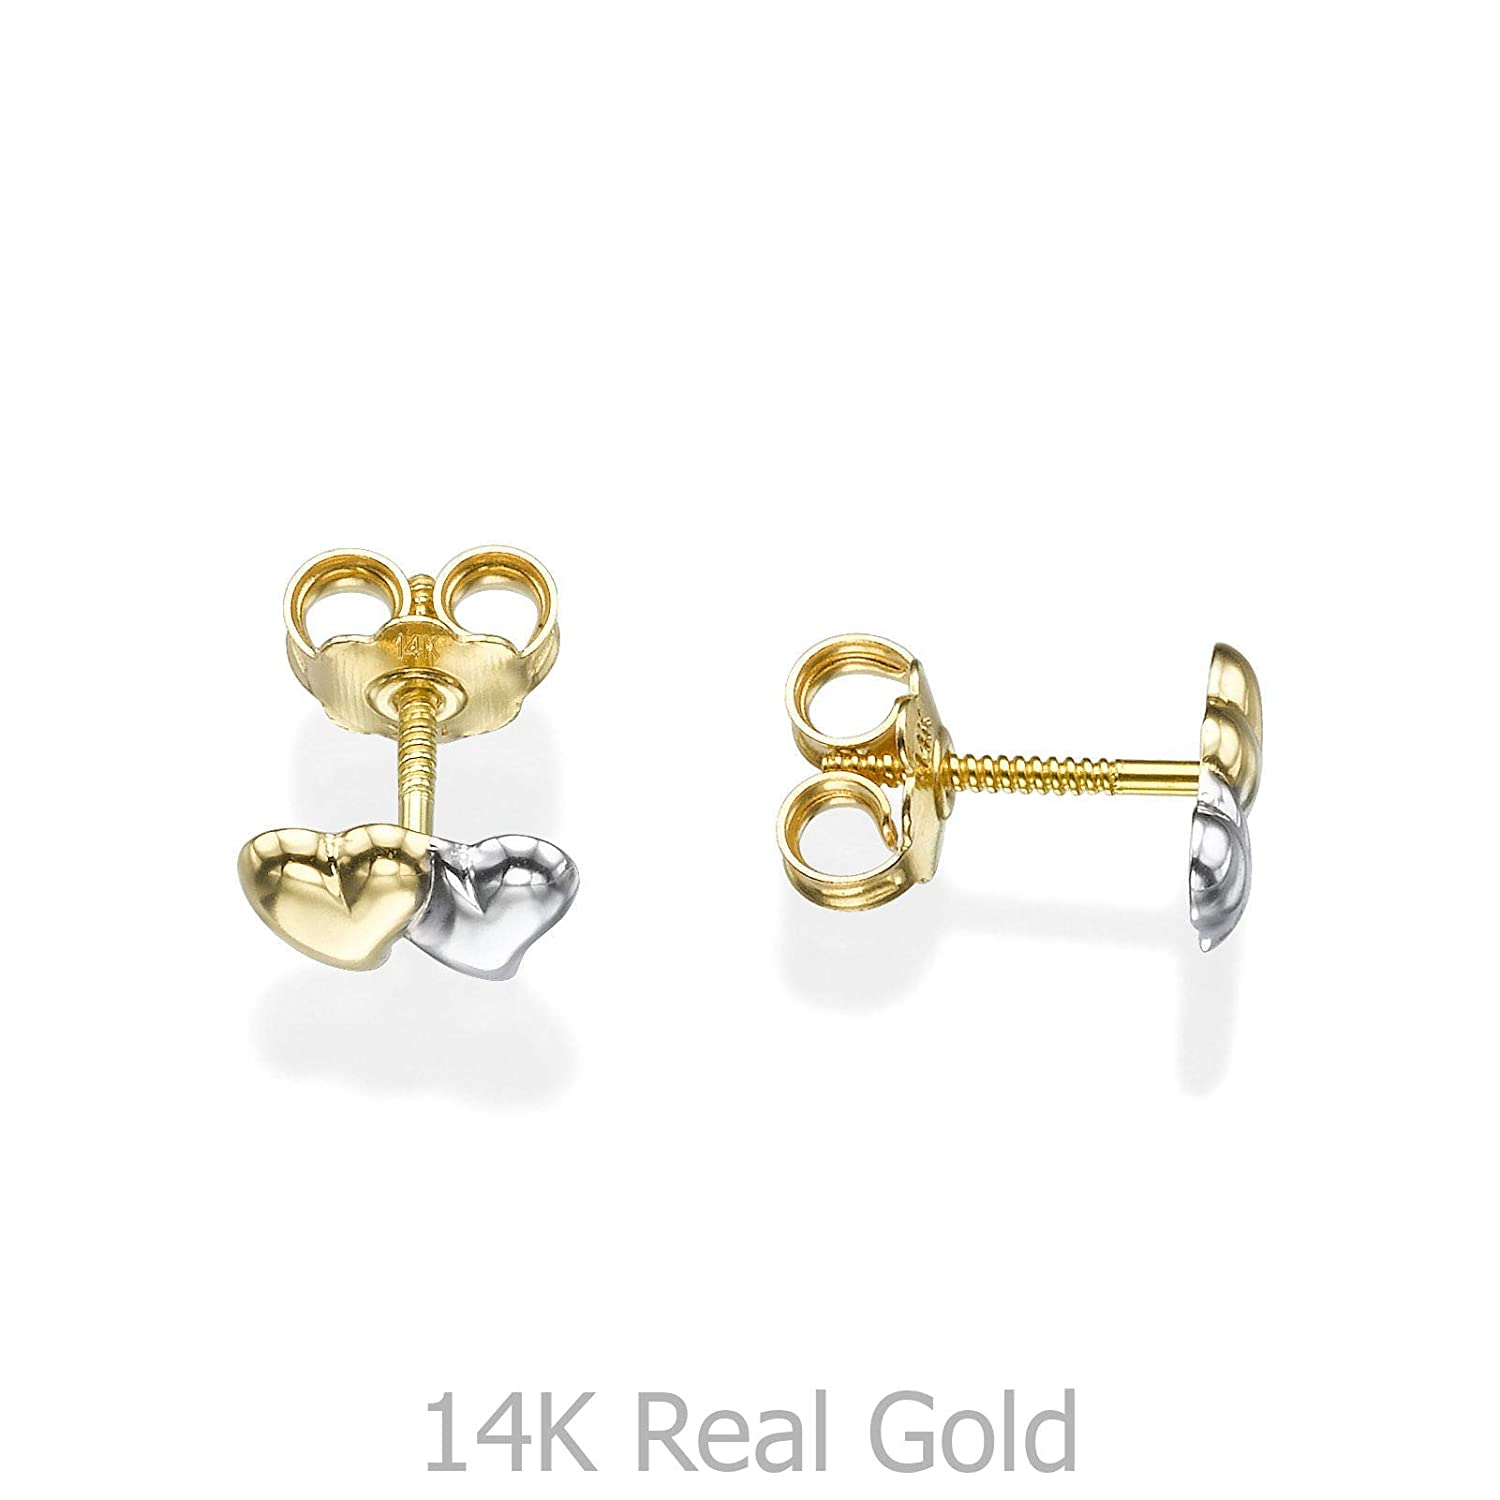 Solid Two Tone Gold 14K Double Star Baby Stud Earrings Screw-back